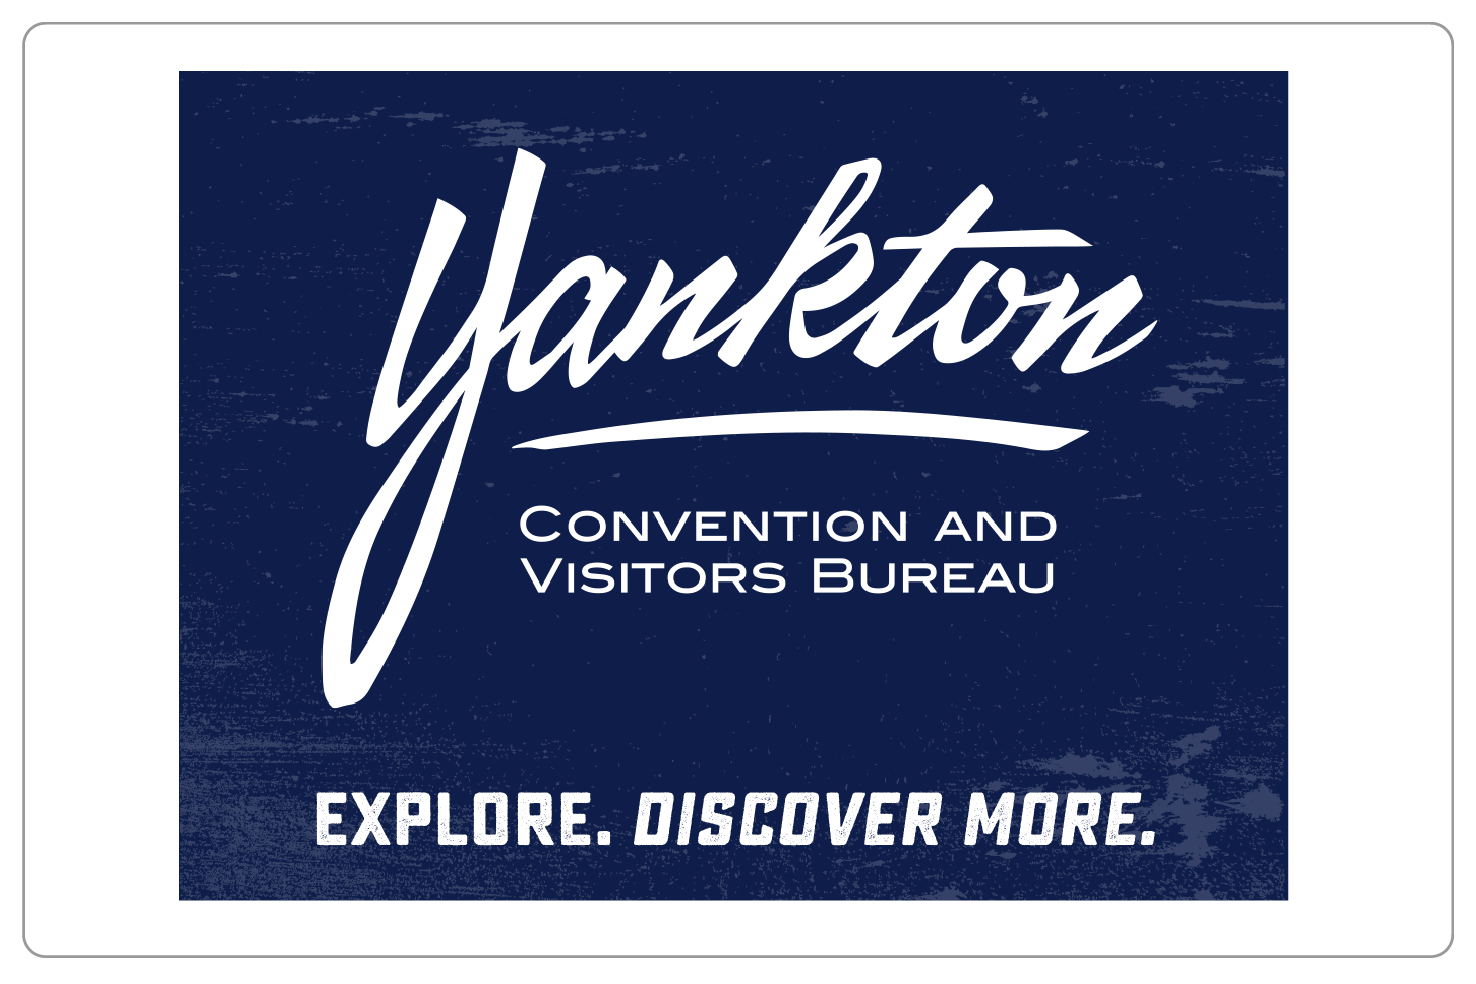 Yankton Convention and Visitors Bureau